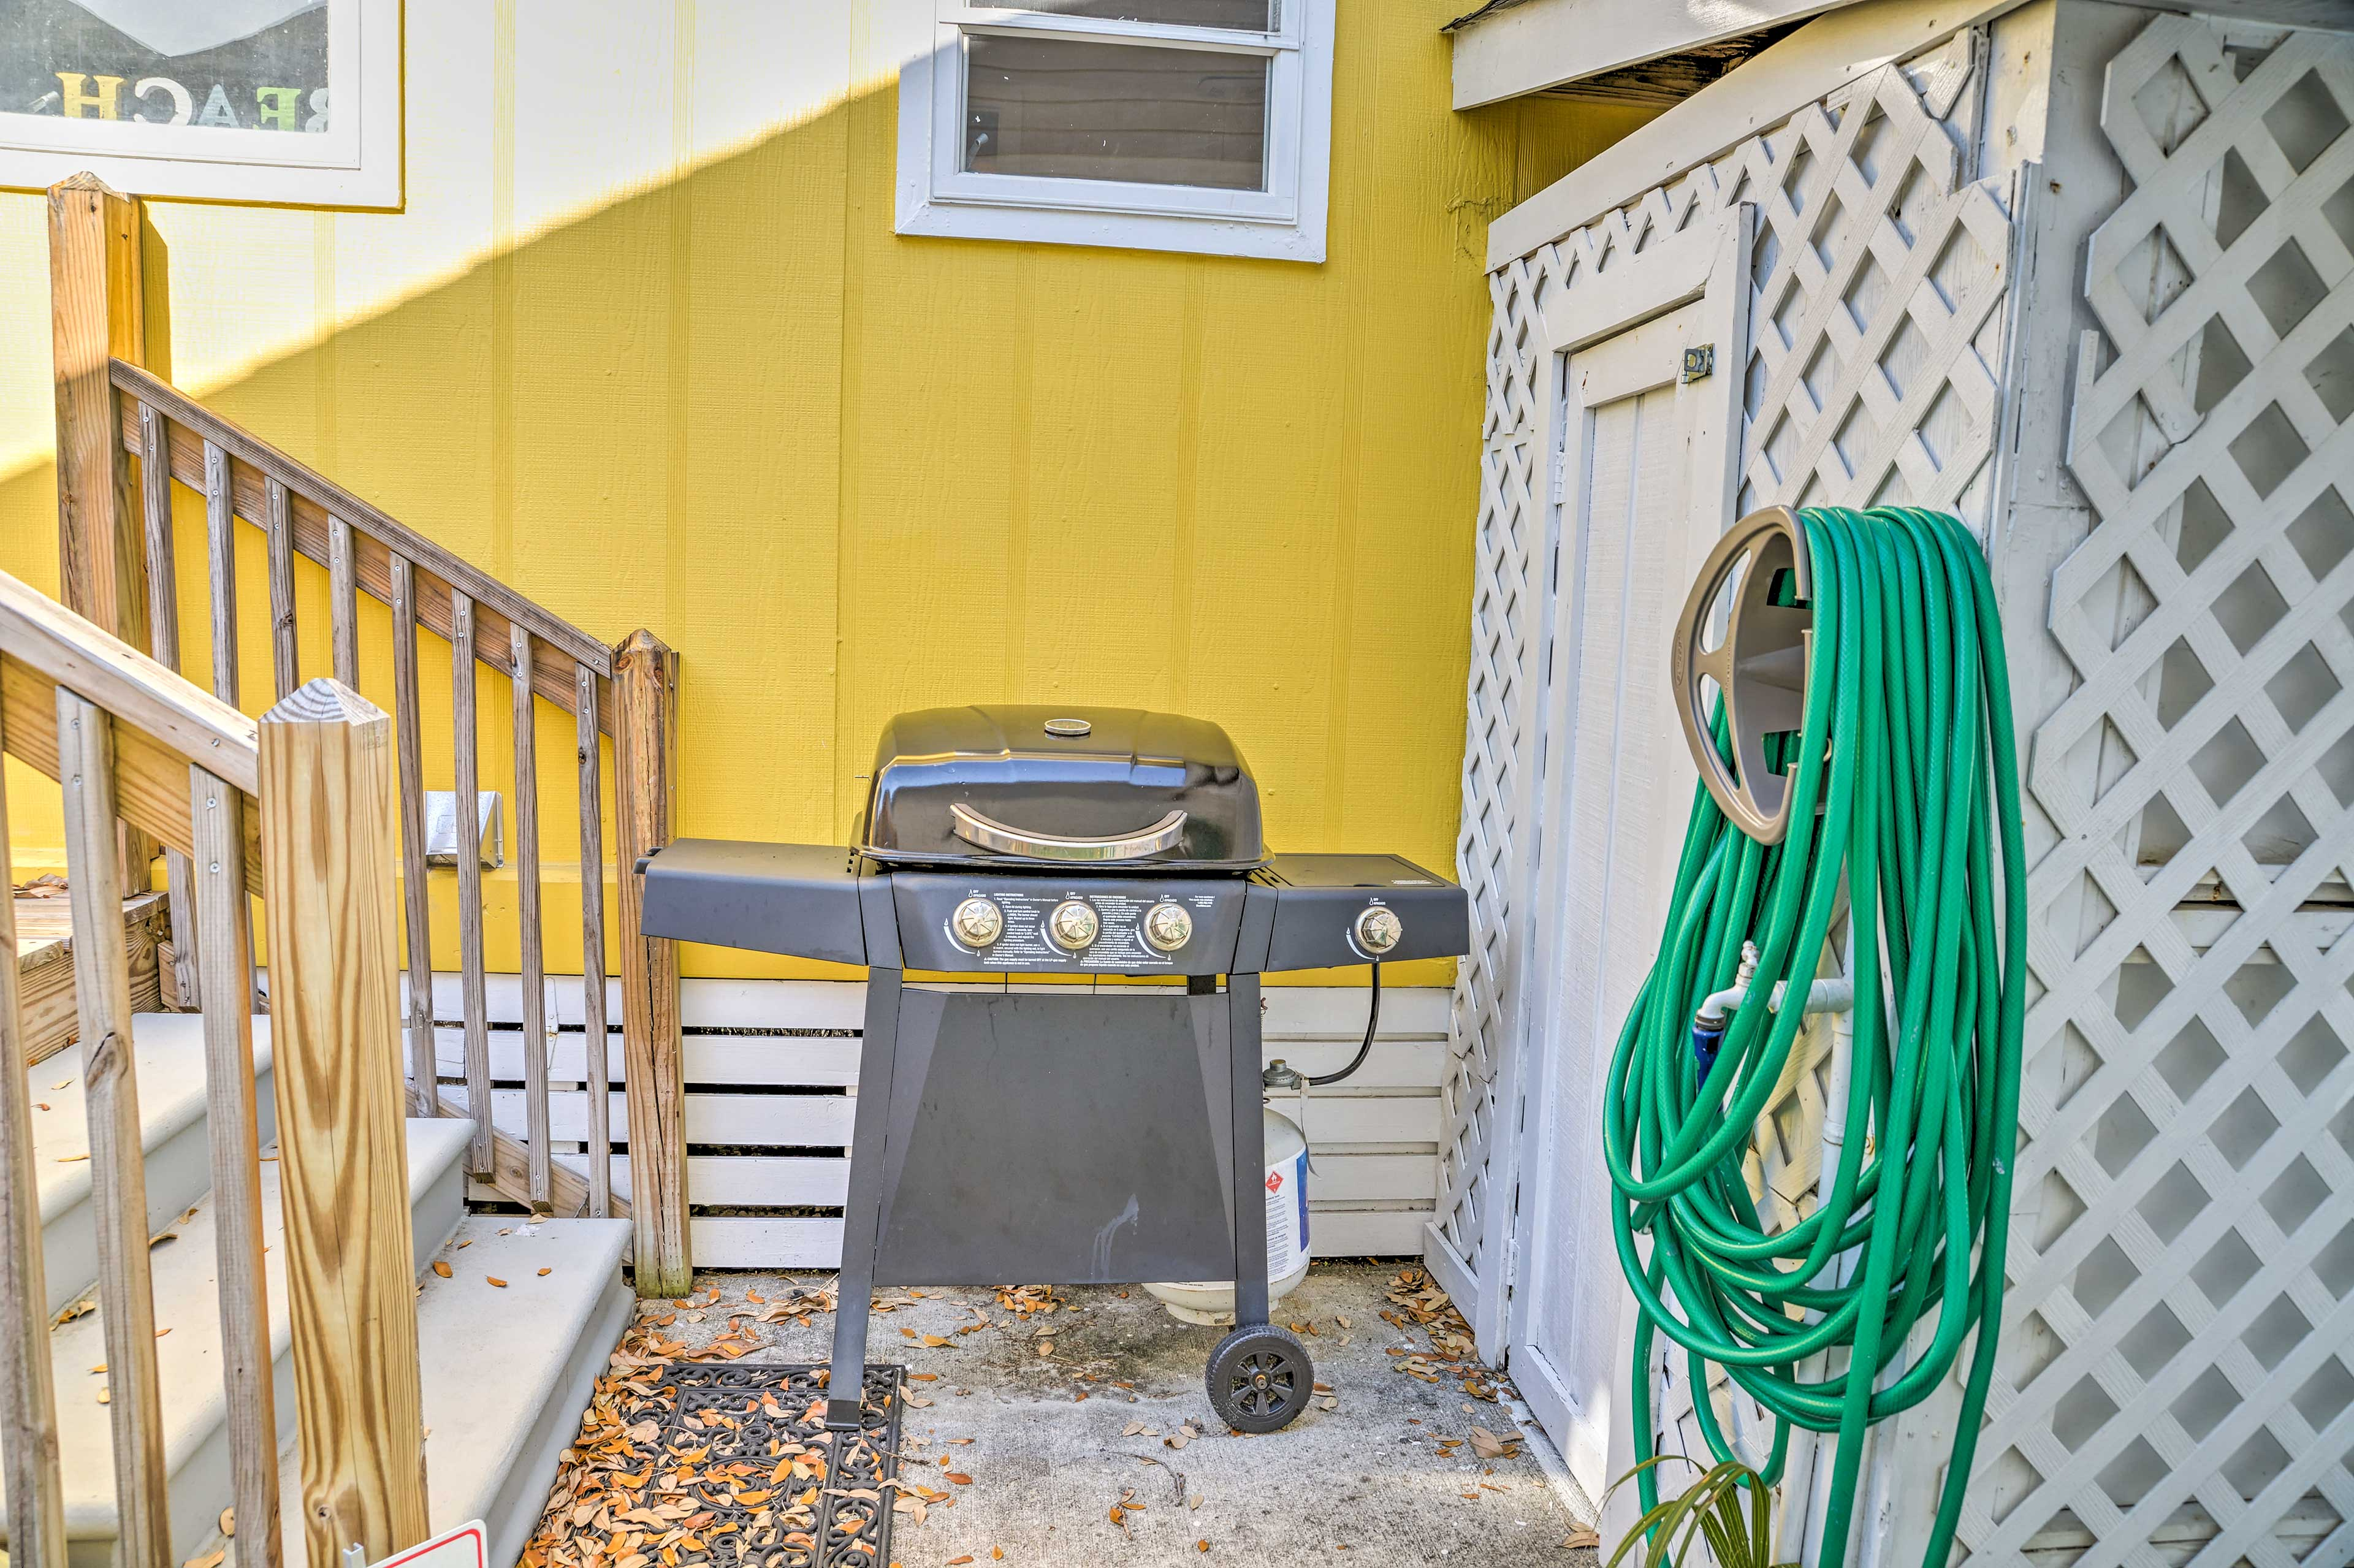 Heat up the catch of the day on this gas grill!